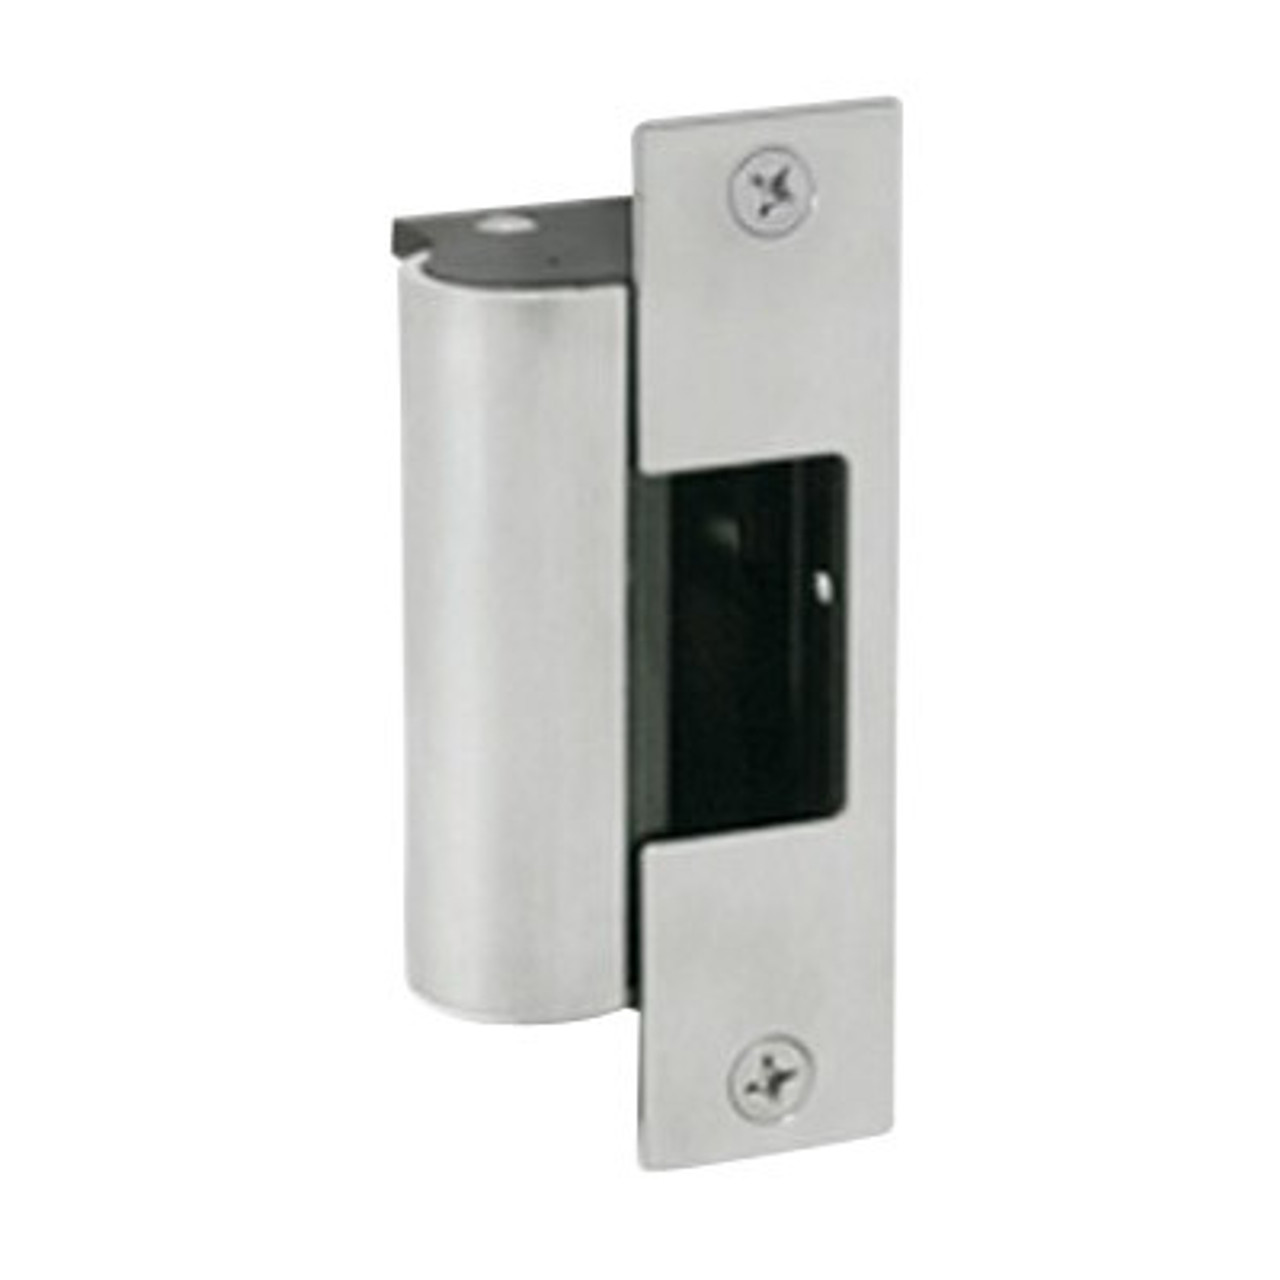 1006CLB-F-LBSM-630 Hes 1006 Series Complete Electric Strike for Latchbolt Lock with Latchbolt Strike Monitor in Satin Stainless Finish